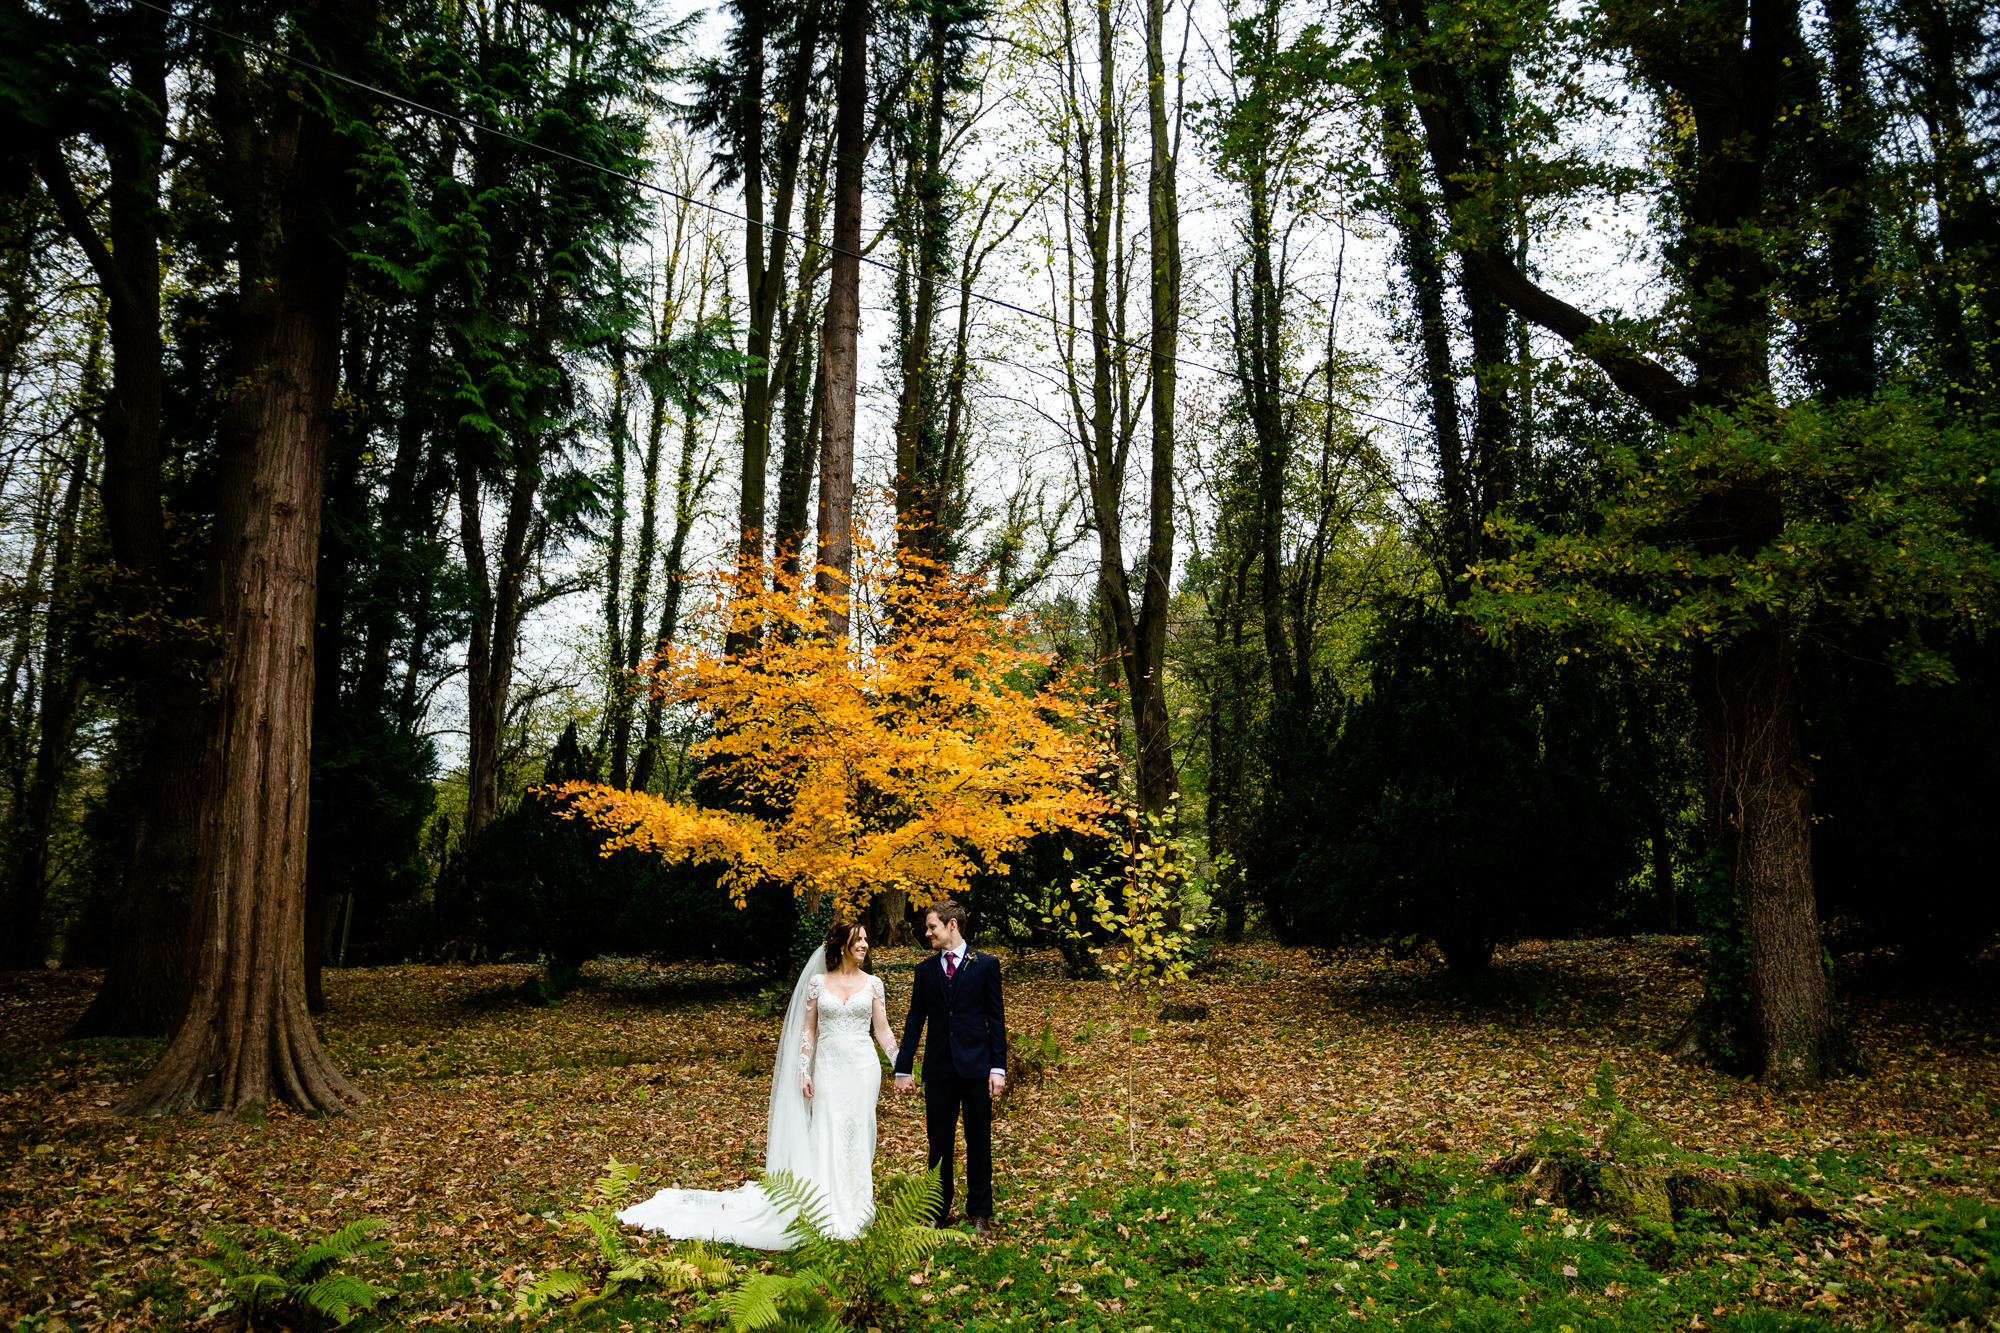 Bride and groom stood in a colourful sutumnal forest at their Wales wedding